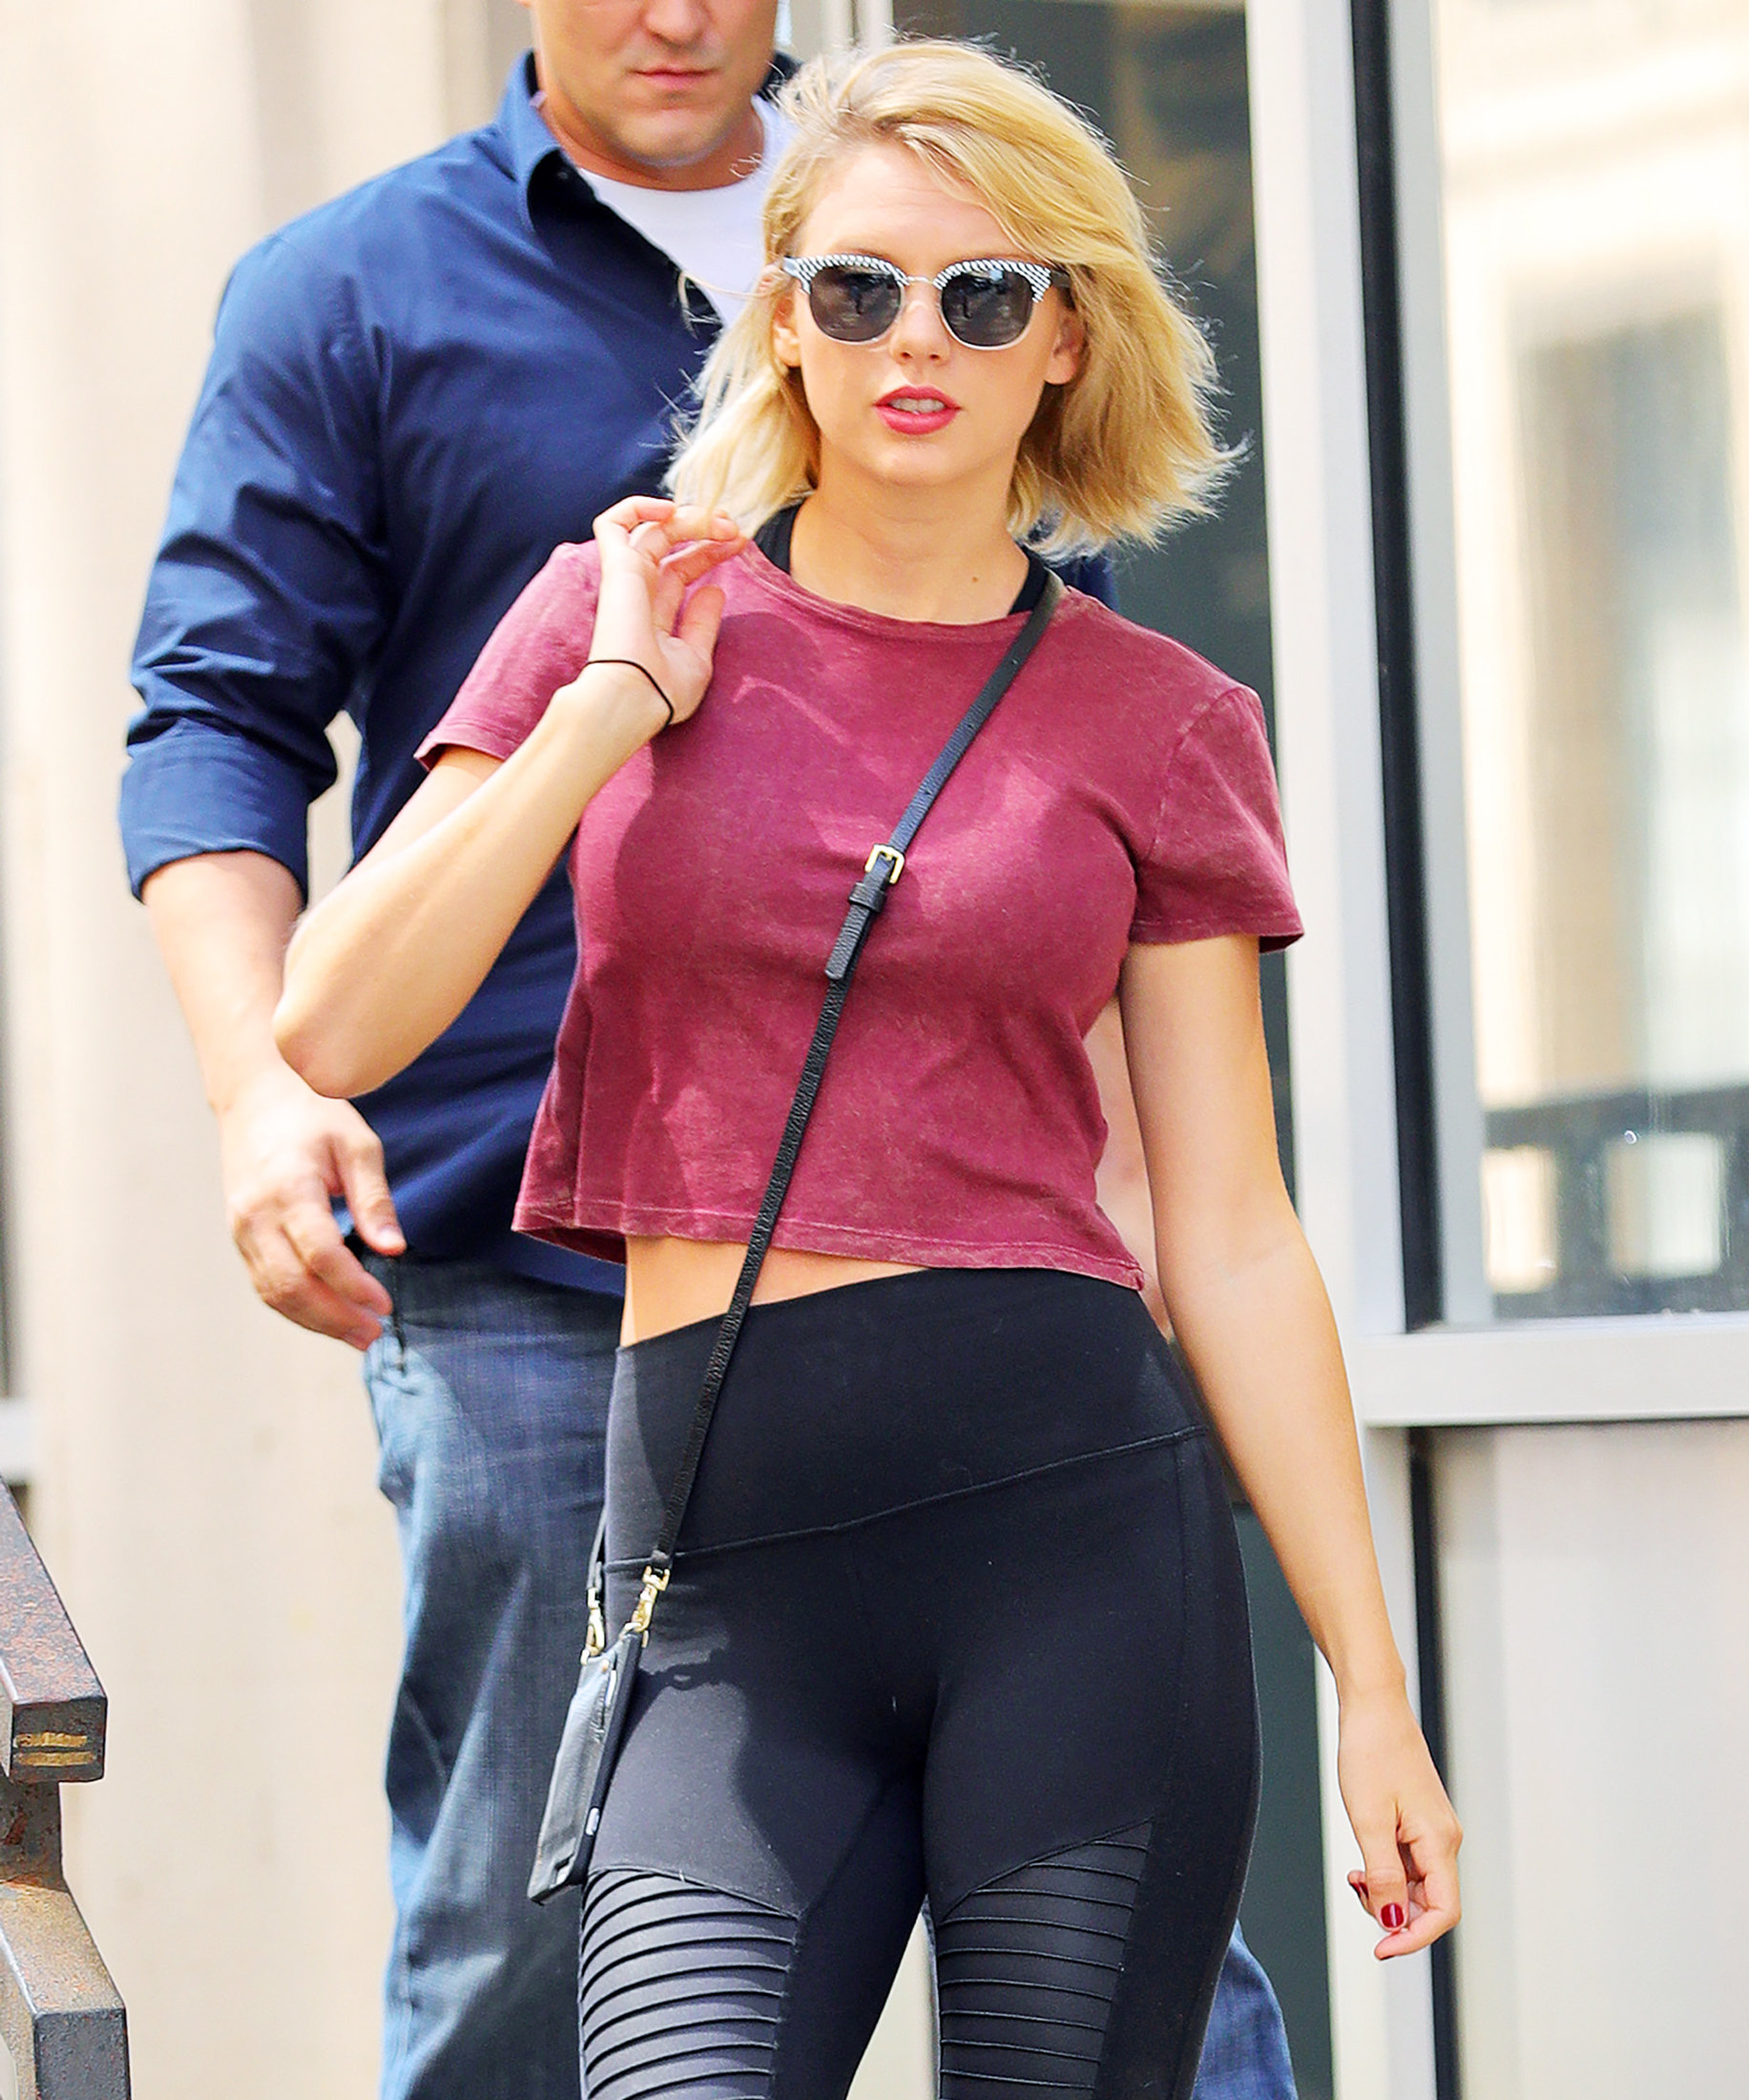 Taylor Swift - August 24, 2016